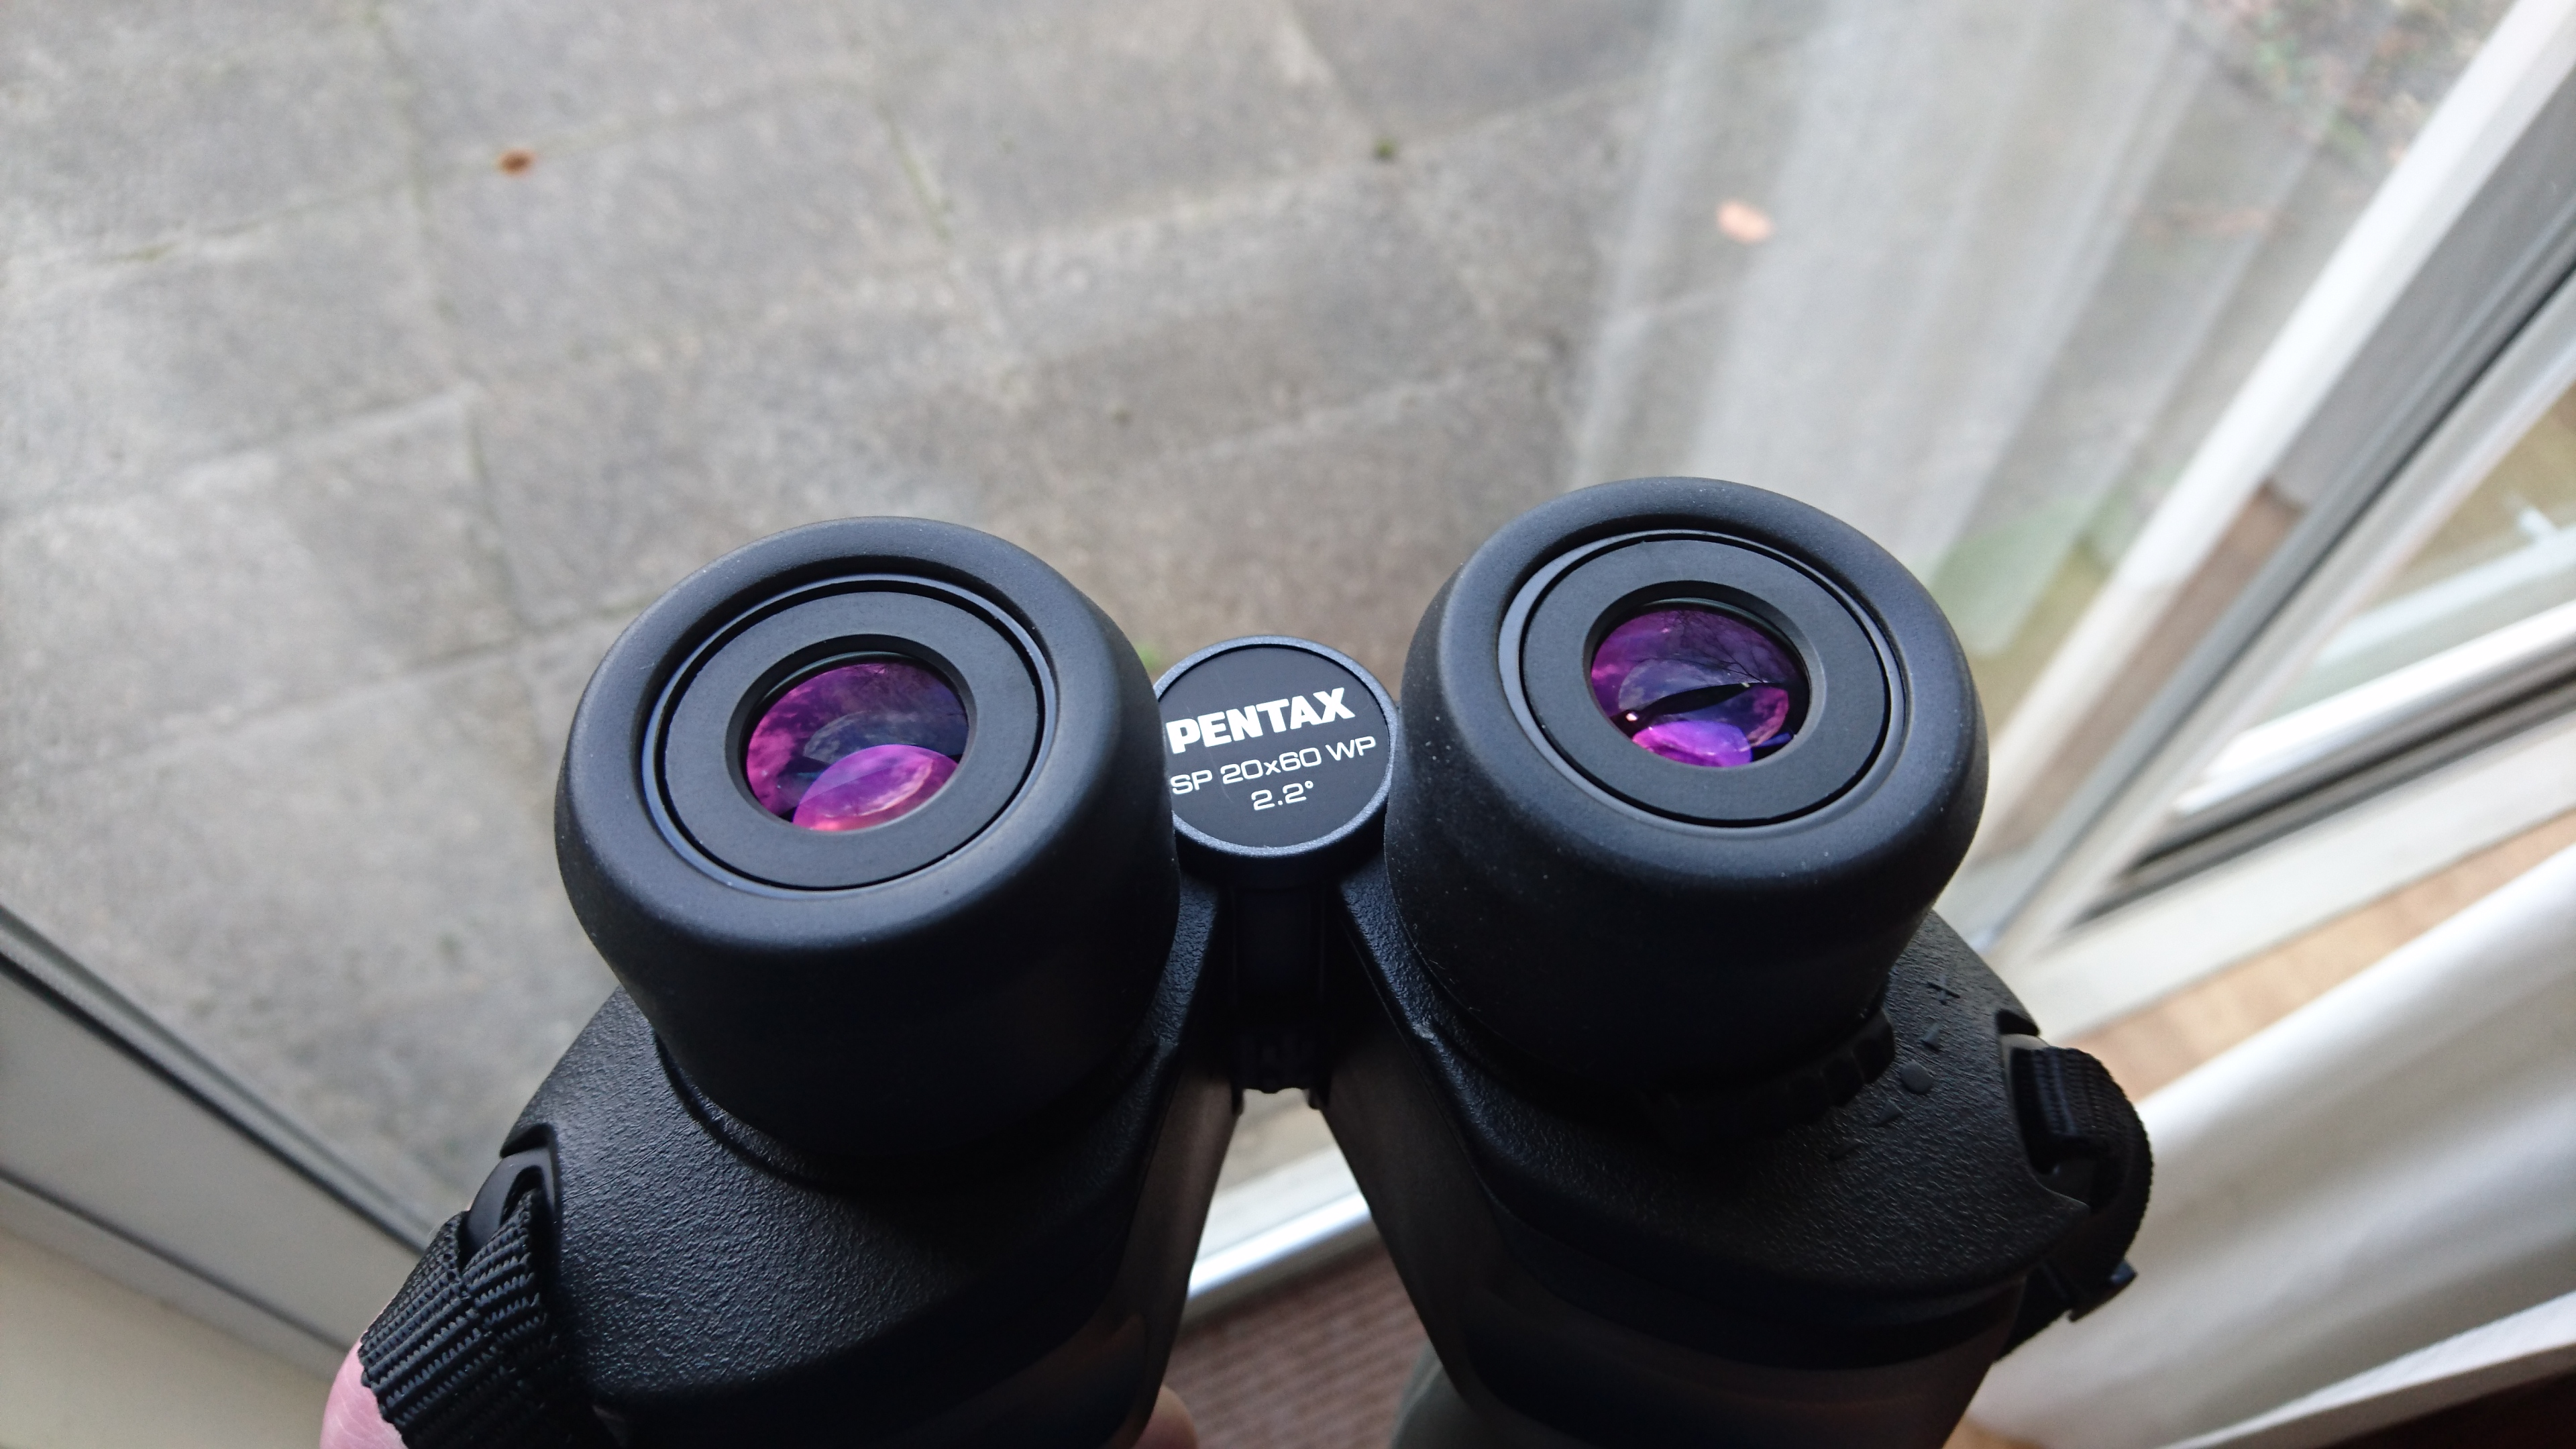 f8f7b6e202b Opinion on Pentax 20x60 - Discussions - Binoculars - Stargazers Lounge